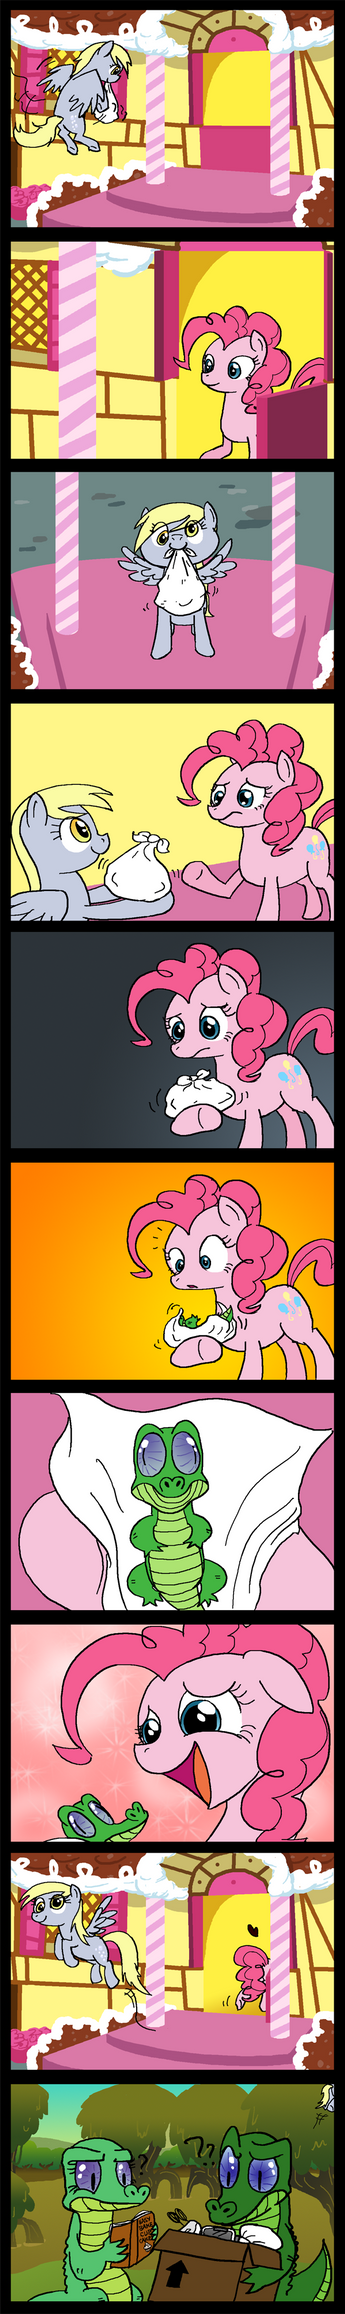 Gummy by Zicygomar